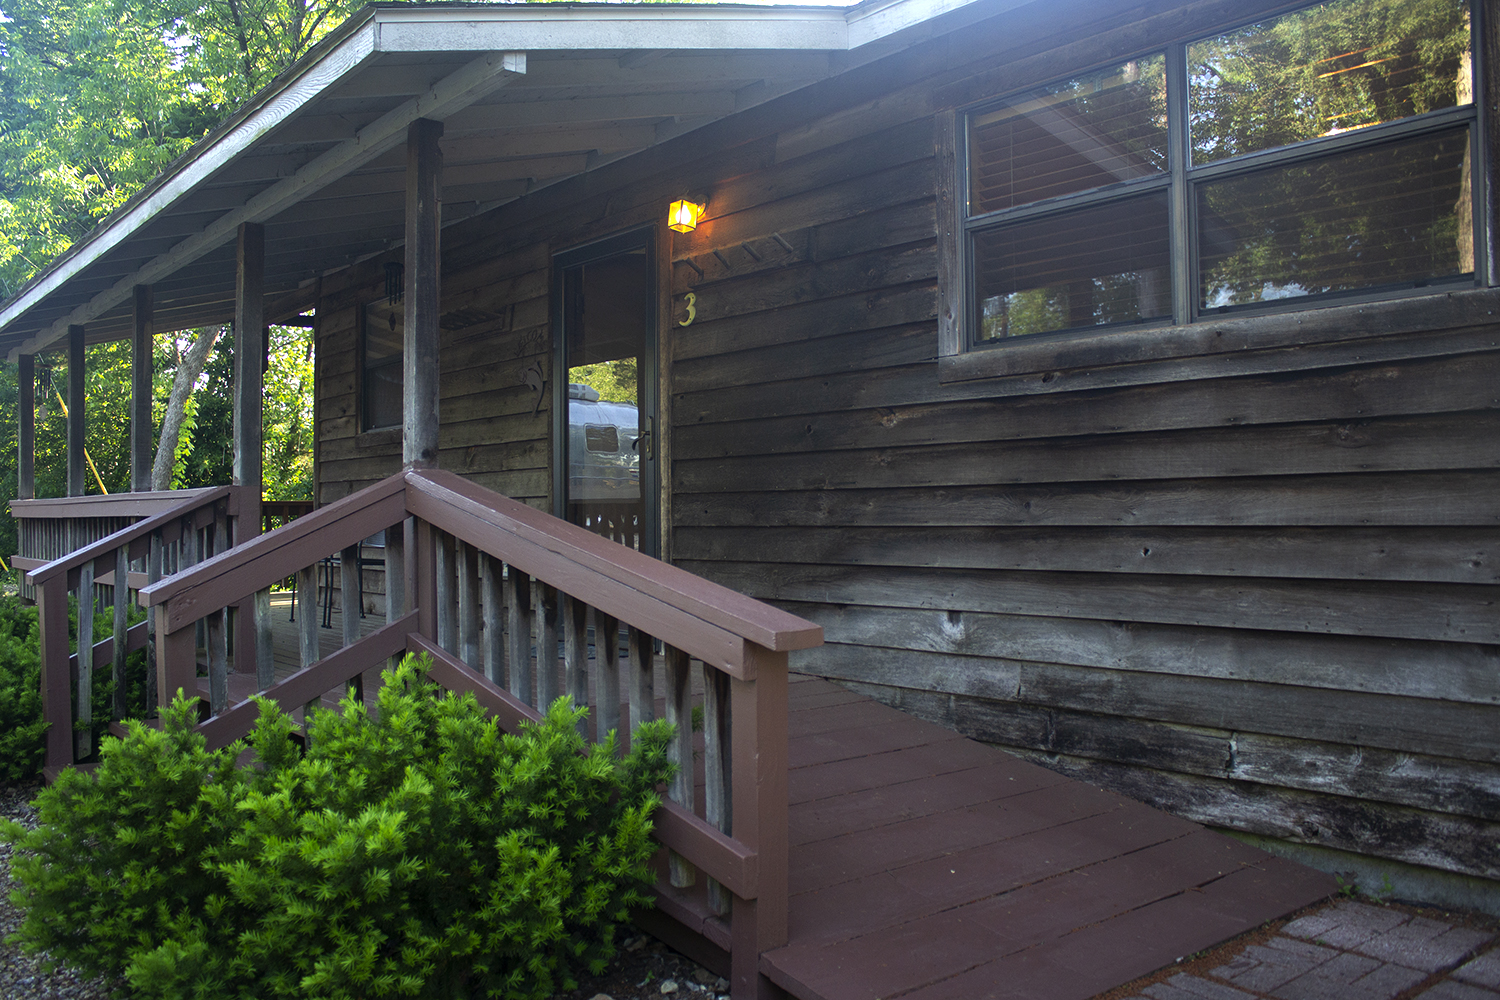 Cabin No. 3 – PRICE DROP!